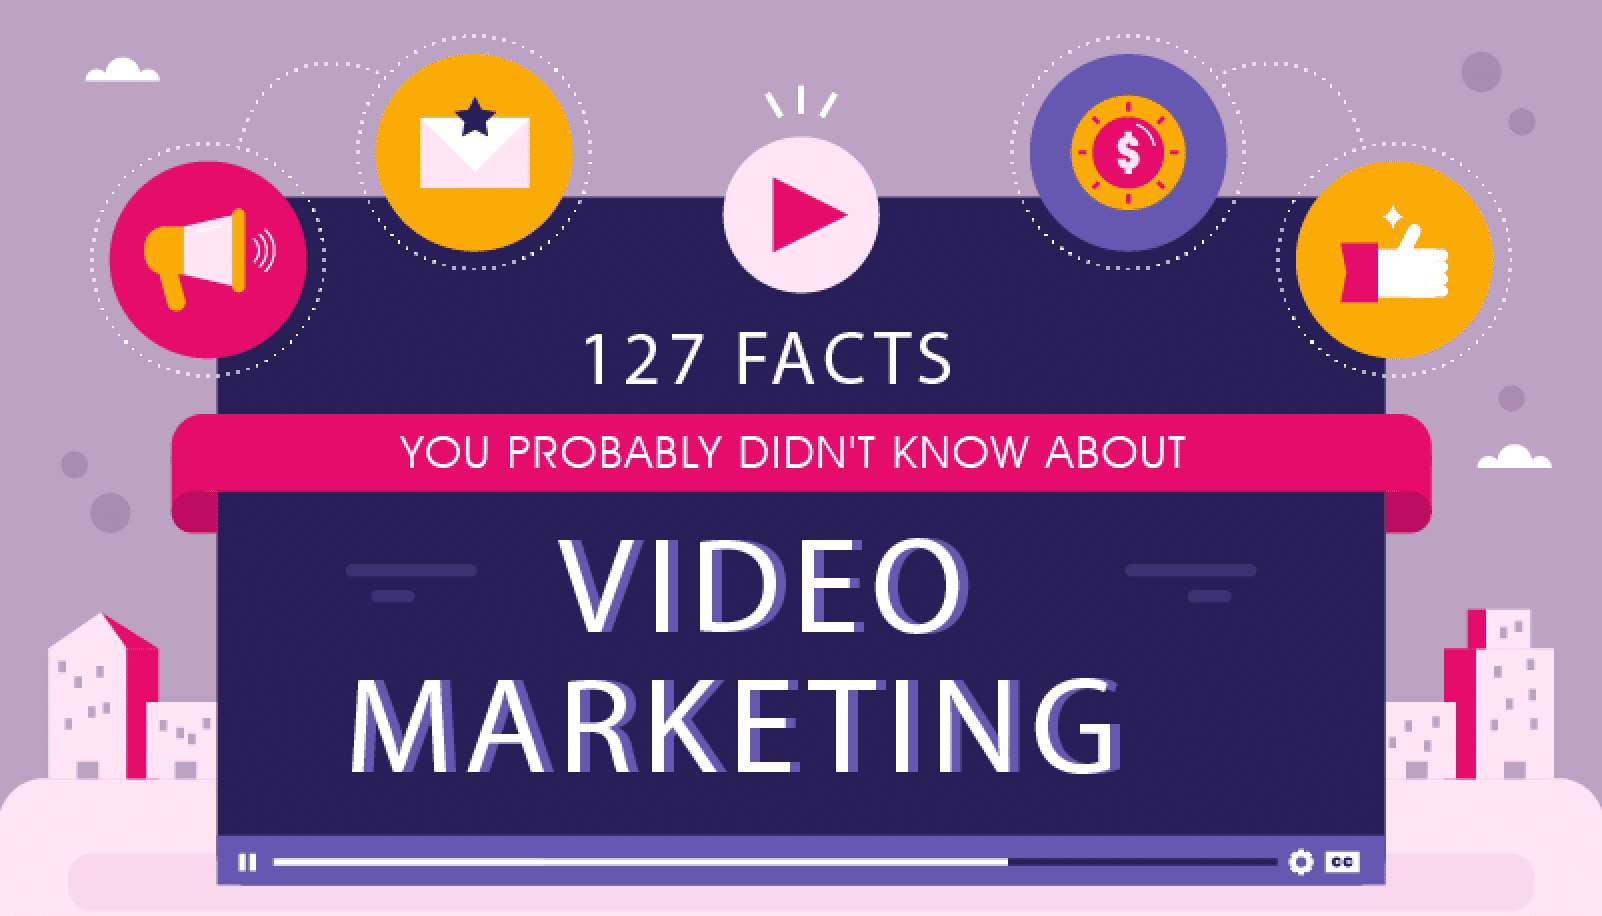 Infographic: 127 Facts You Probably Didn't Know About Video Marketing